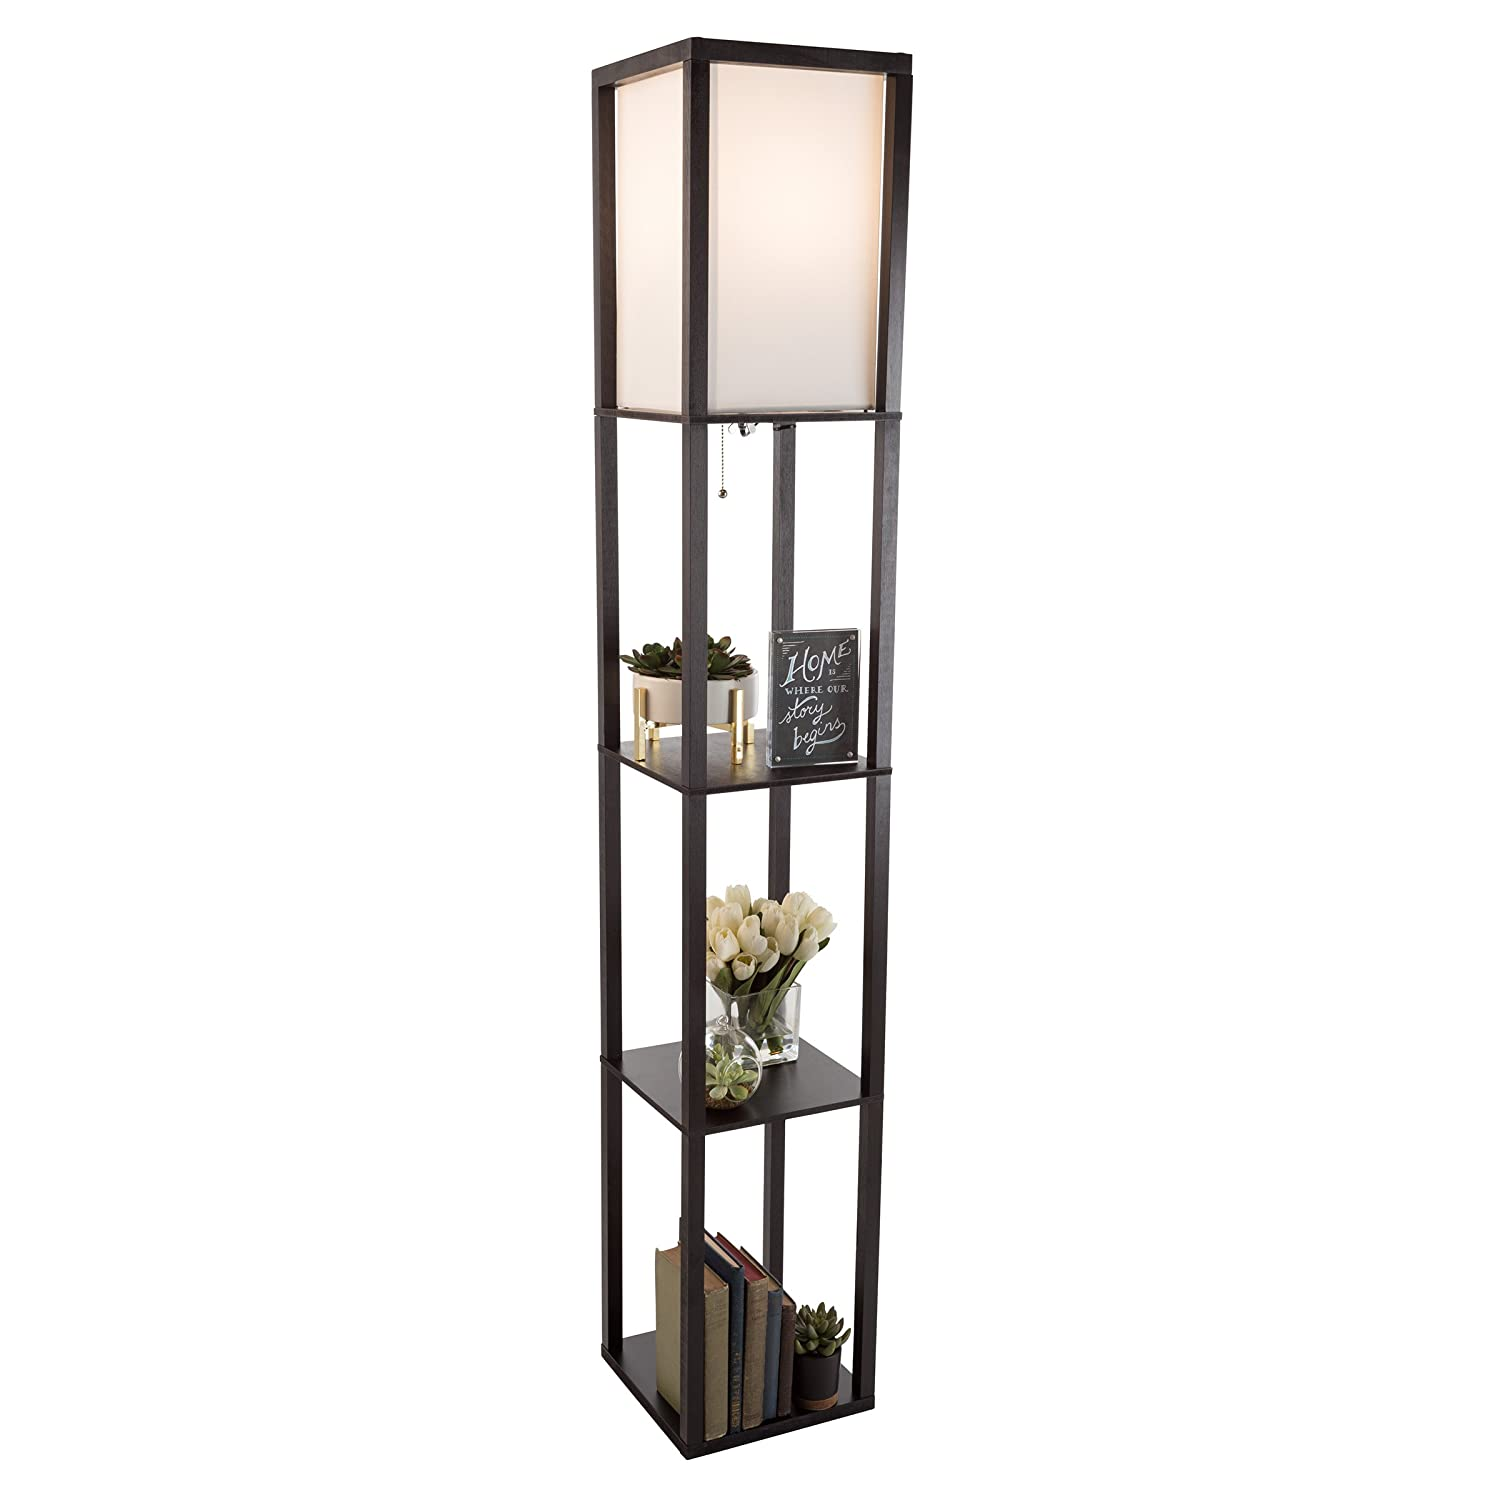 Floor Lamp-Etagere Style Tall Standing with Shade LED Light Bulb Included-3 Tiers Storage Shelving for Accent Decor Organization-by Lavish Home(Black)